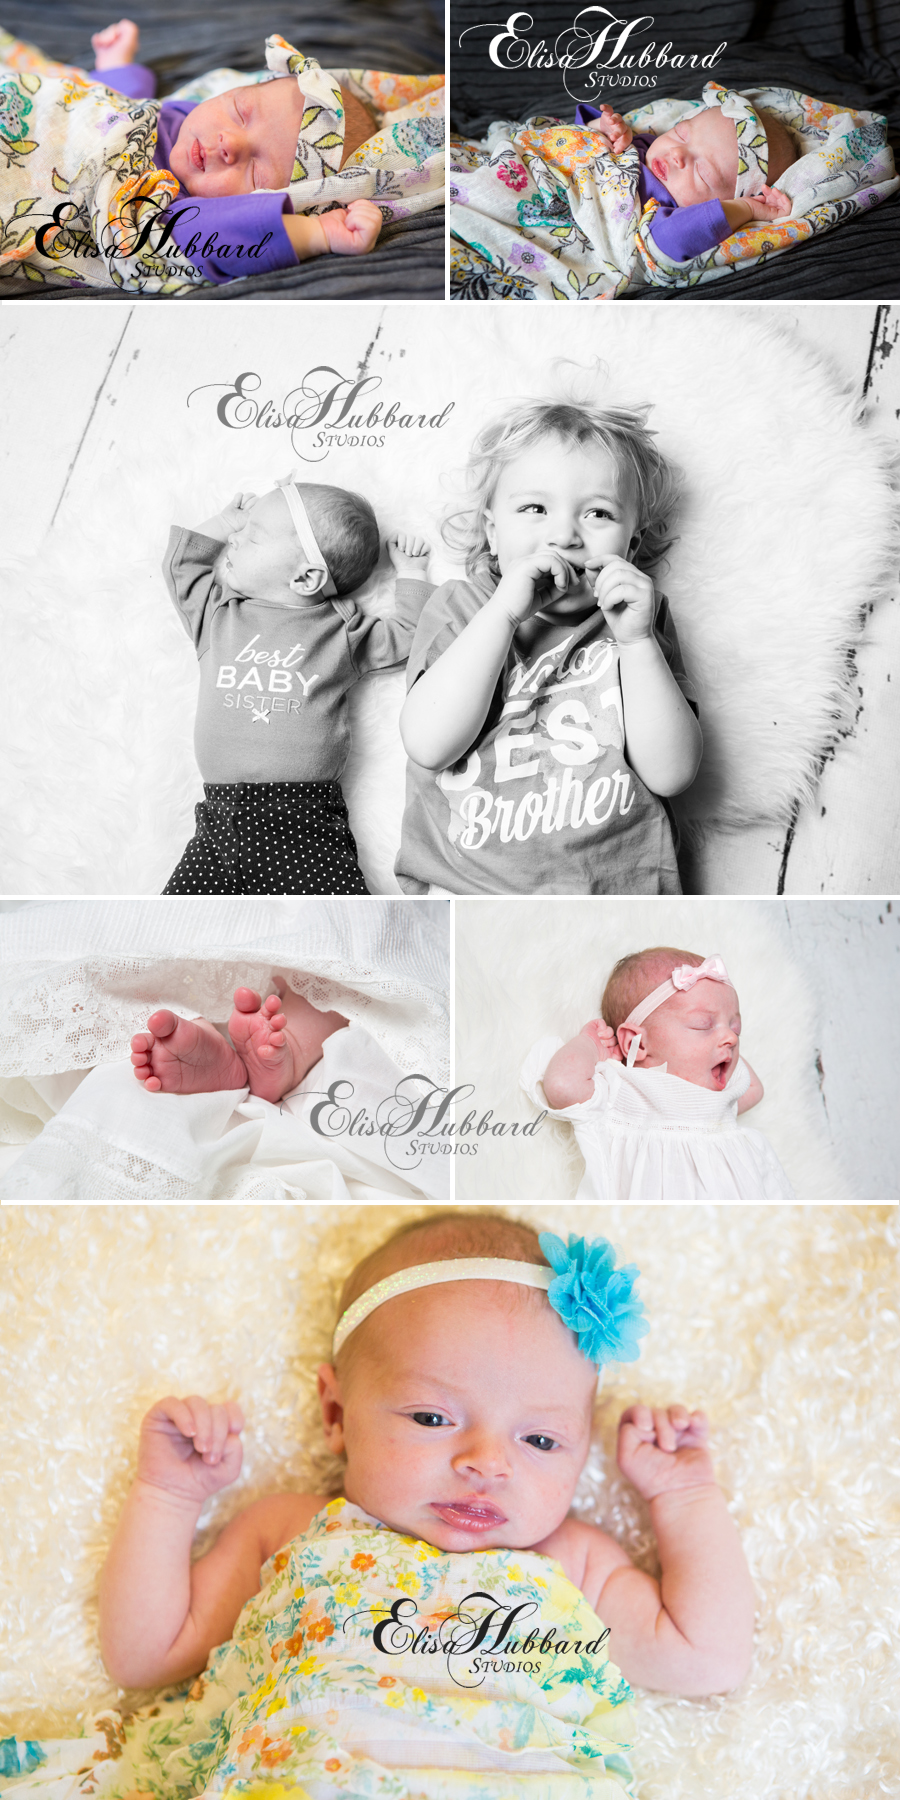 Elisa Hubbard Studios, Child Photography, Newborn Photography, Siblings, Studio Photography